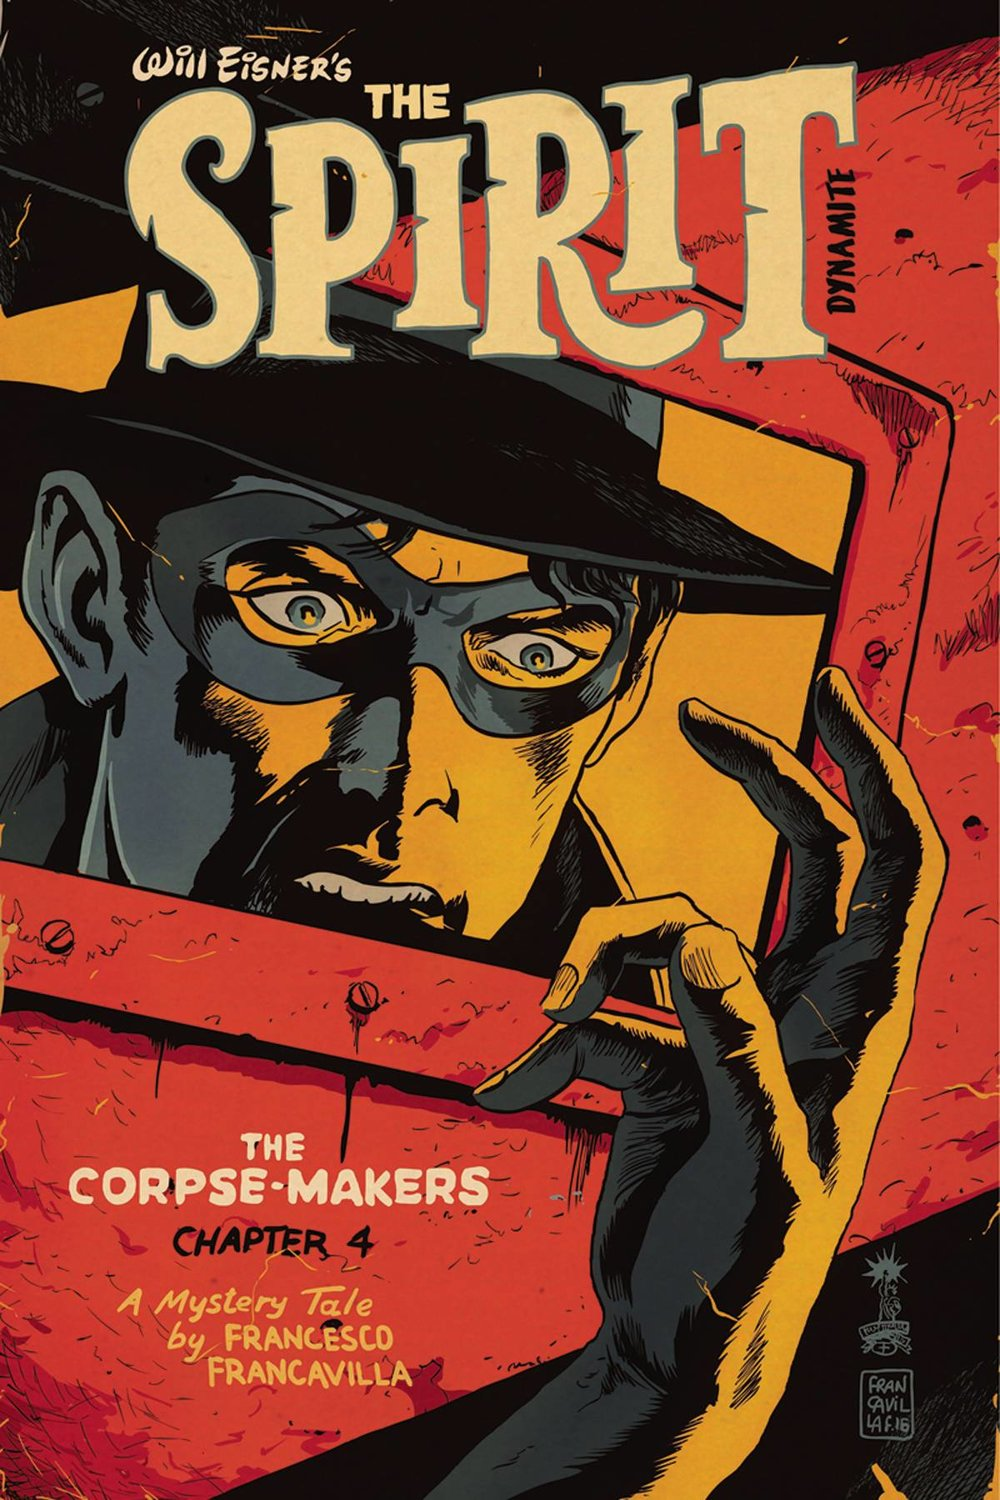 WILL EISNER SPIRIT CORPSE MAKERS 4 of 5 CVR A FRANCAVILLA.jpg